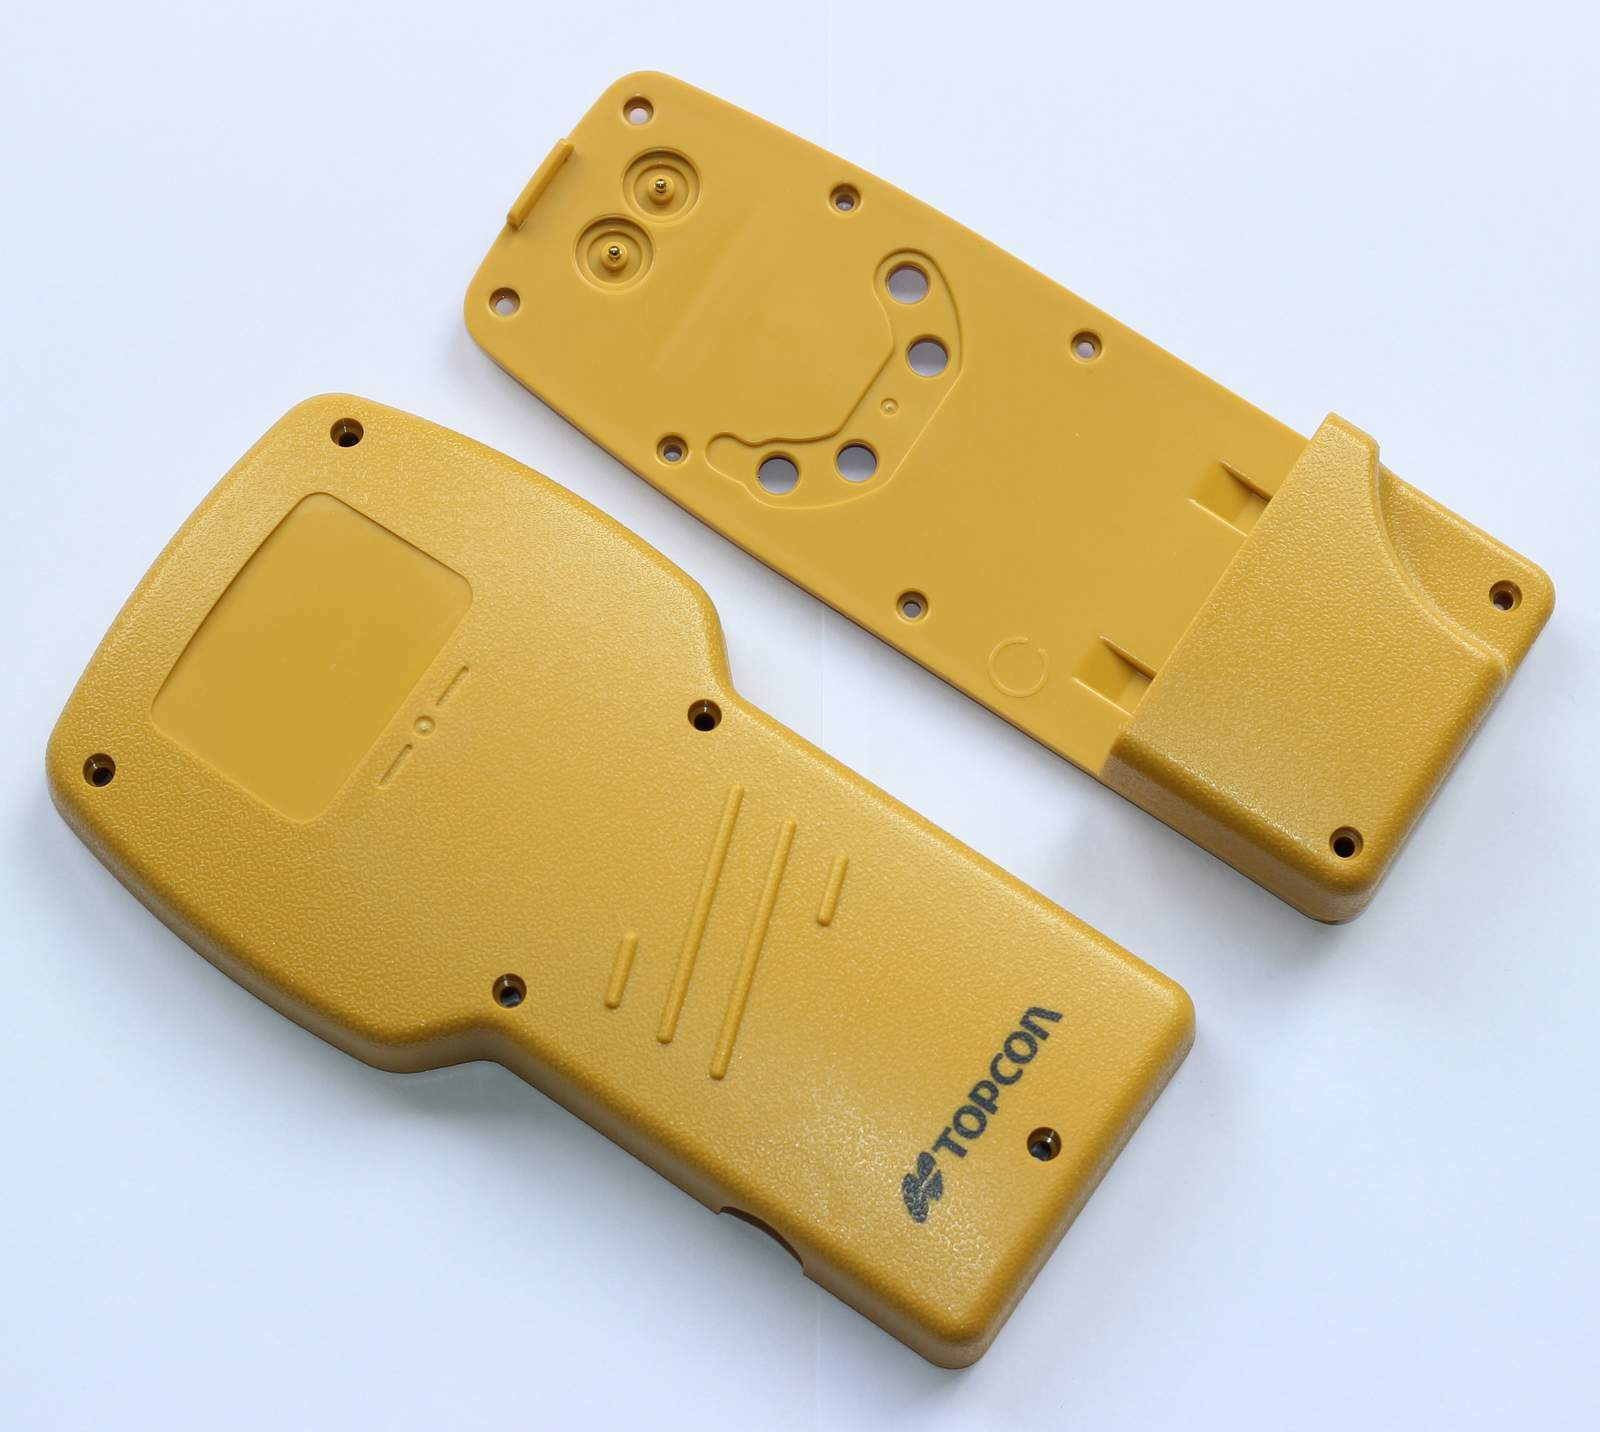 NEW Side Bezel Baffles for Topcon Topcon 332/3002/102/225 etc TOTAL STATION Disassemble part